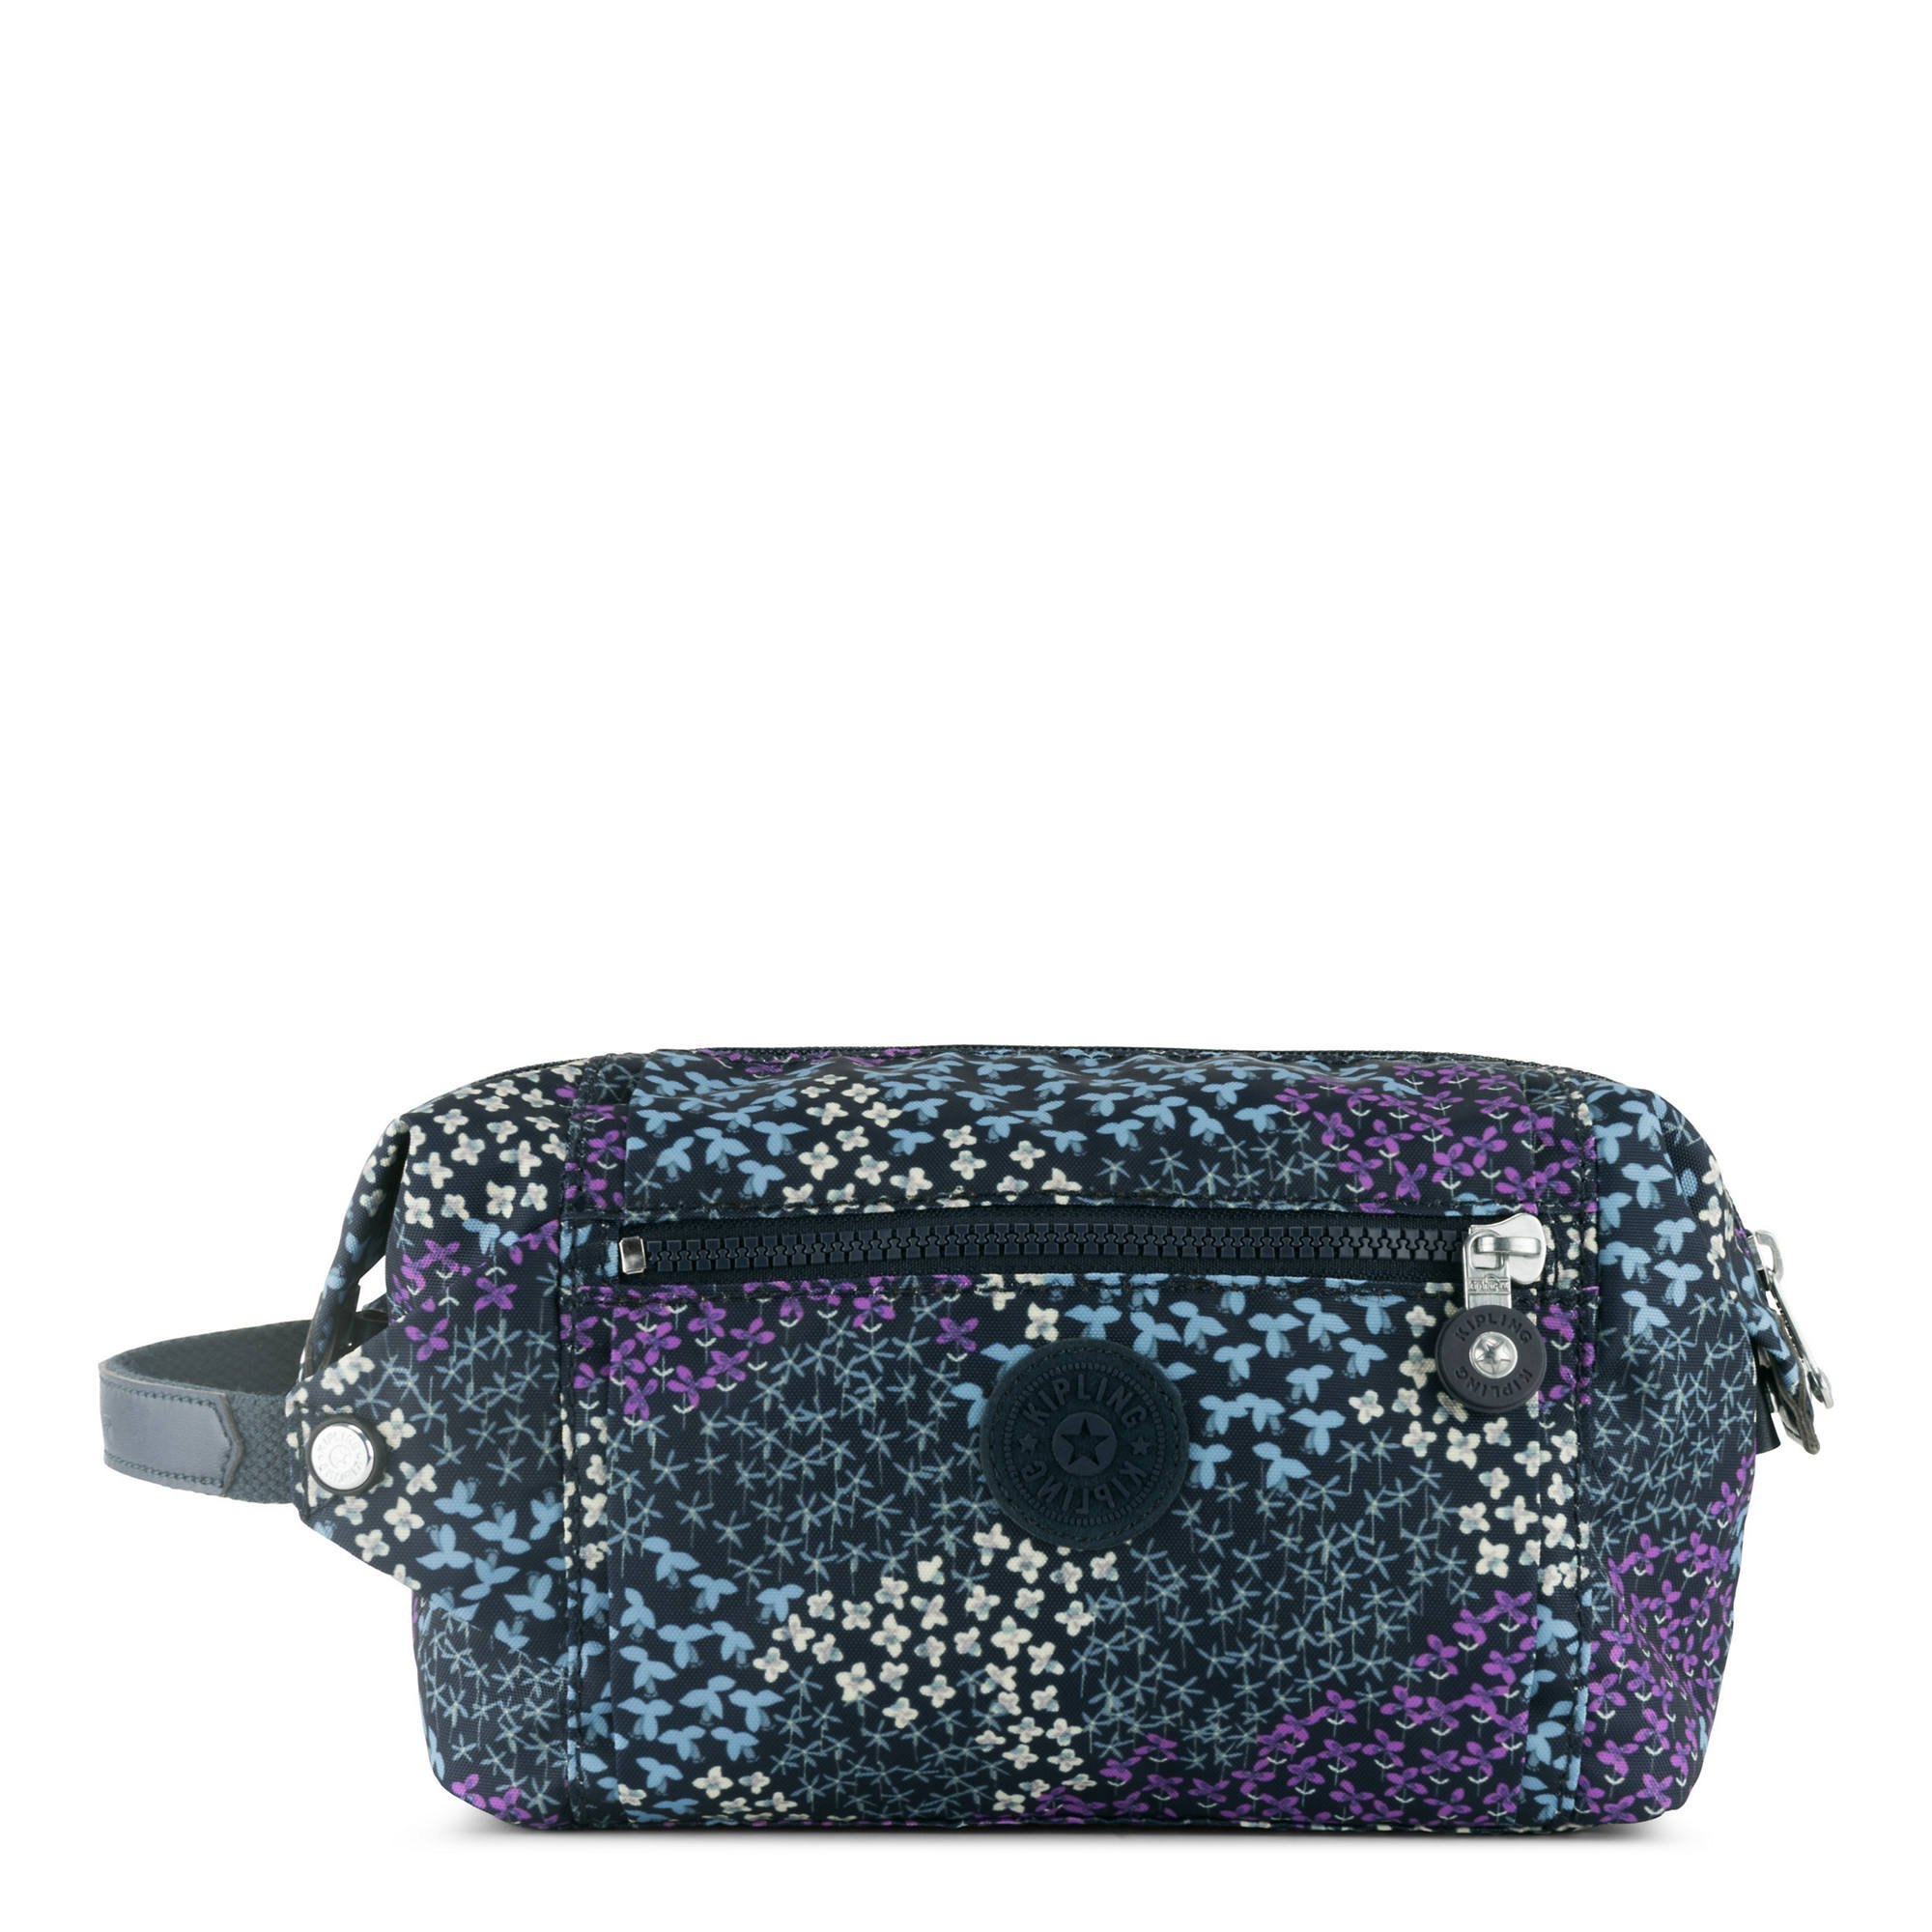 Kipling Aiden Toiletry Bag, Essential Travel Accessory, Dotted Bouquet